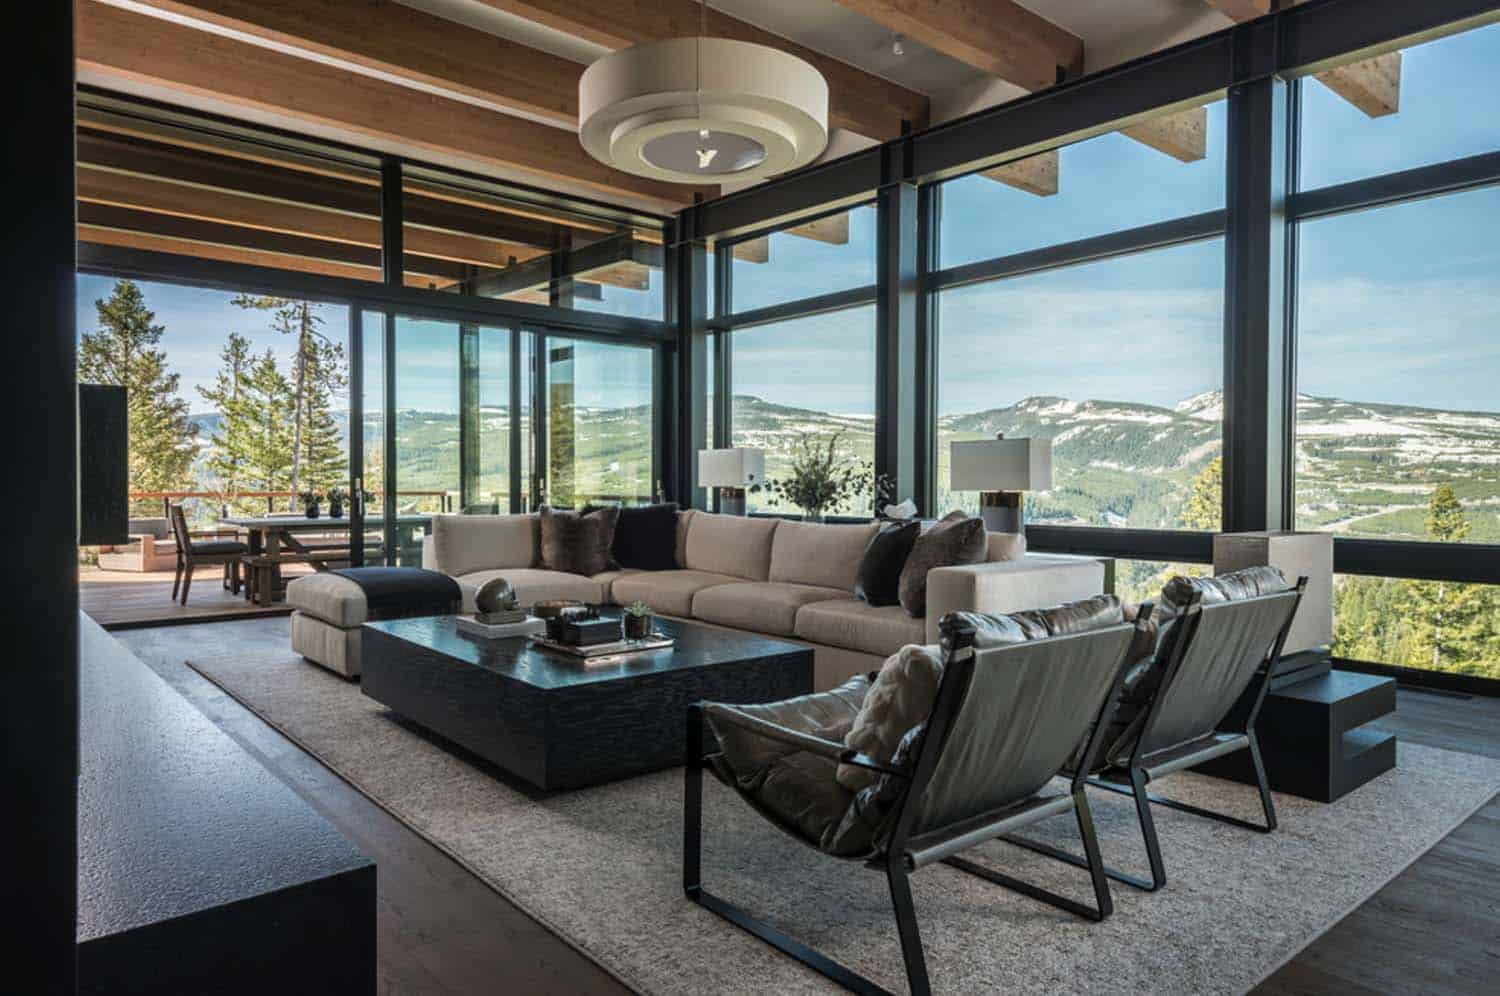 Mountain Modern Home-Reid Smith Architects-02-1 Kindesign